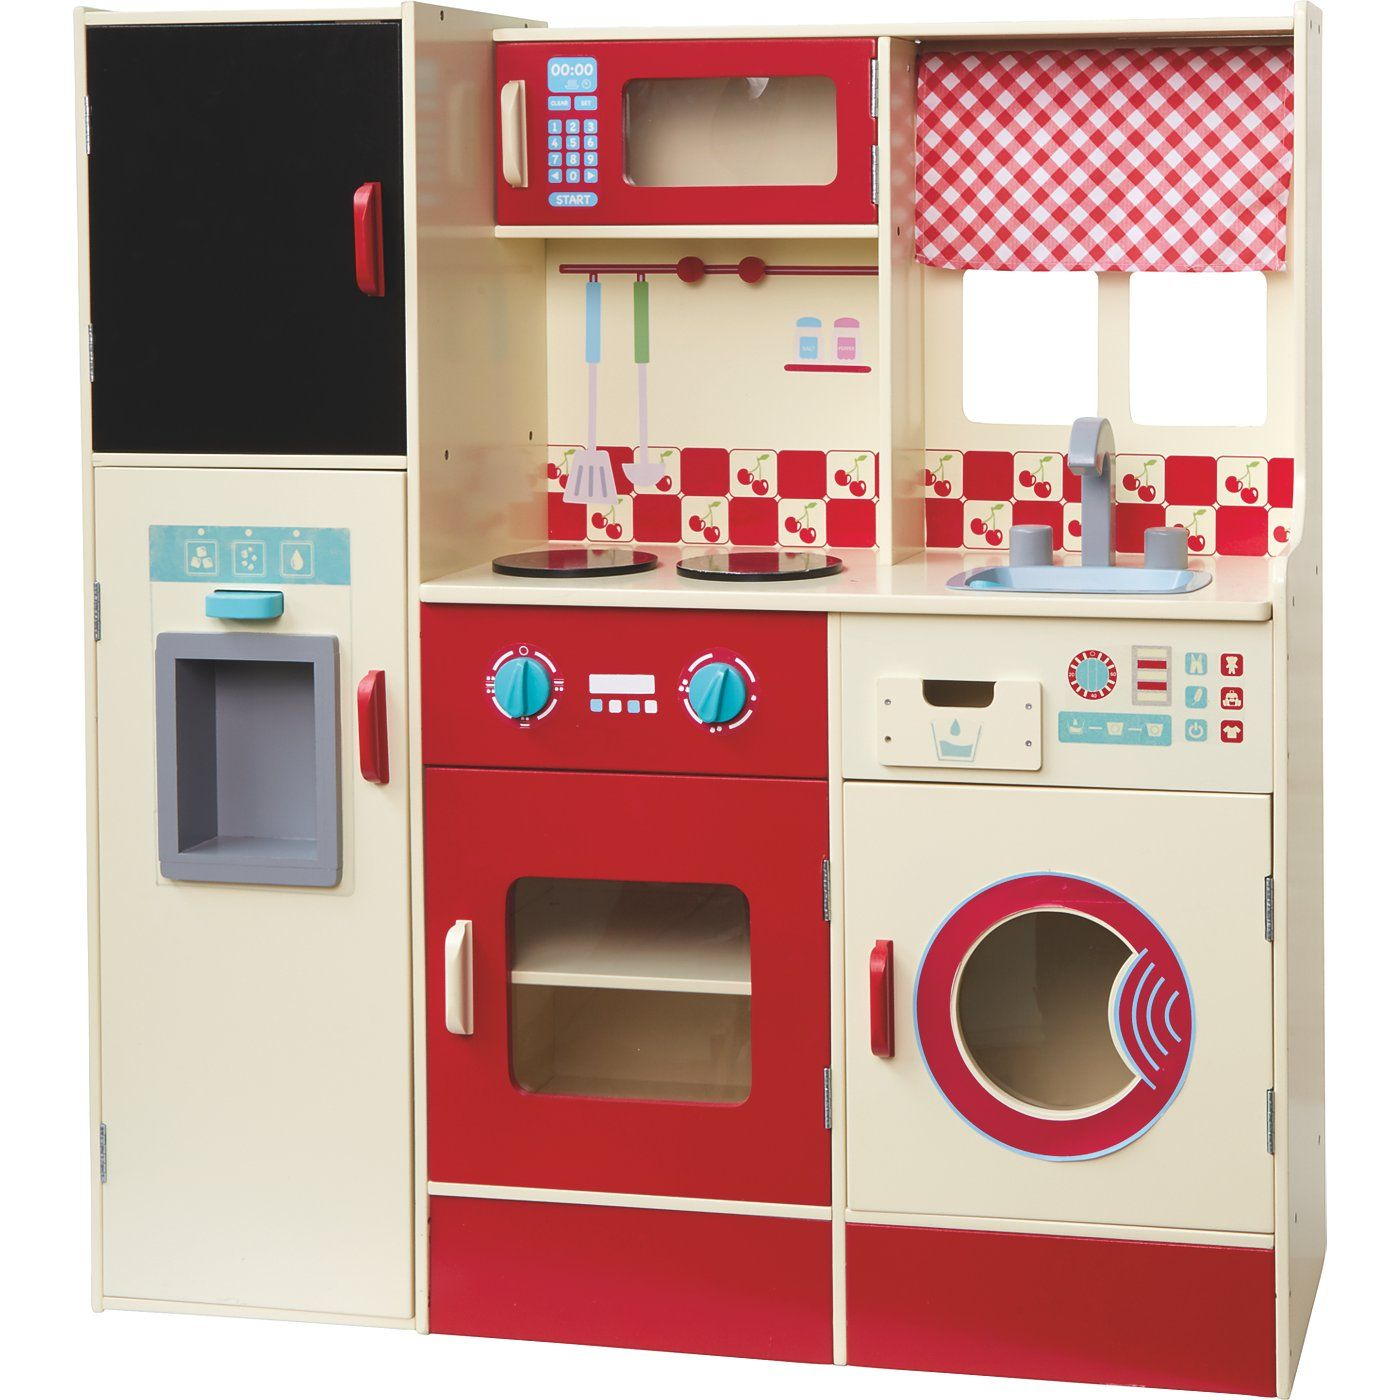 George Home Wooden Kitchen And Laundry Set Read Reviews And Buy